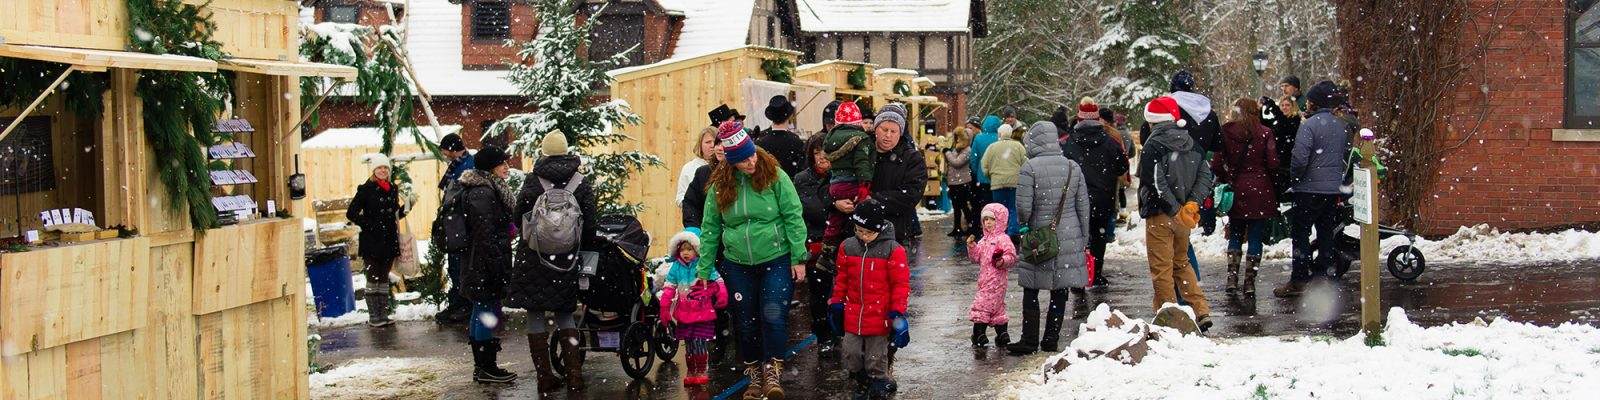 About the Winter Village